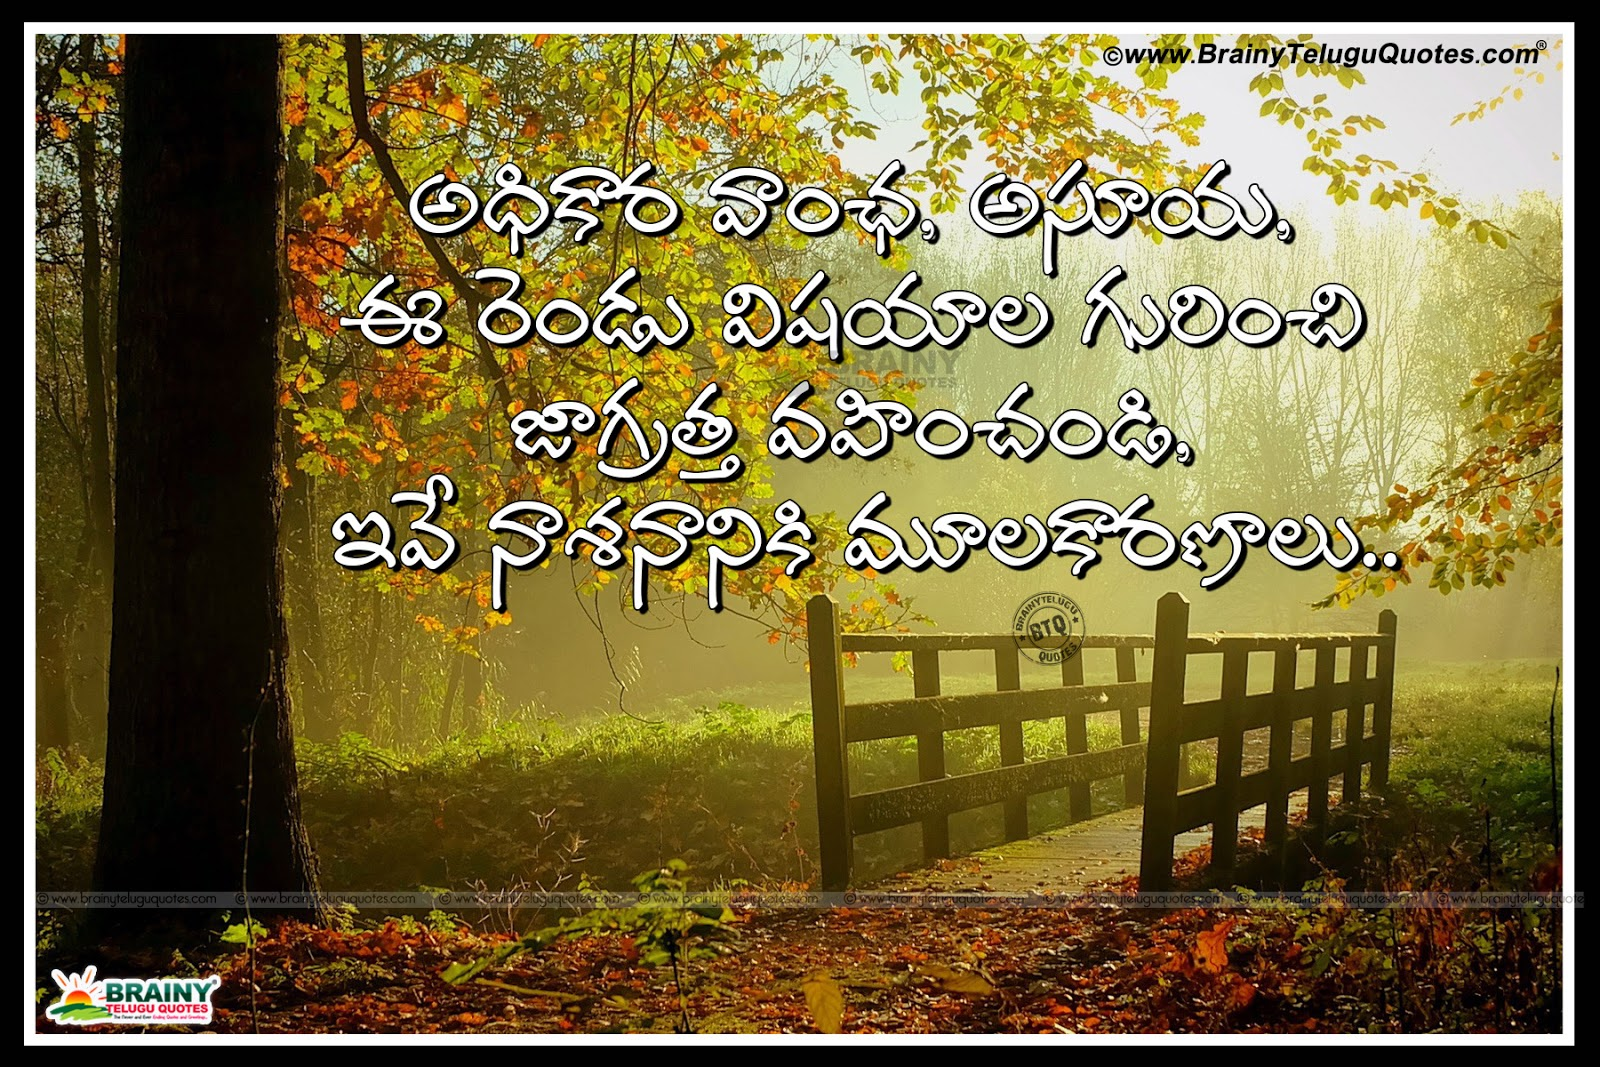 The 50 Best Good Morning Quotes Of All Time: Telugu Best All Time Life Inspirational Quotations